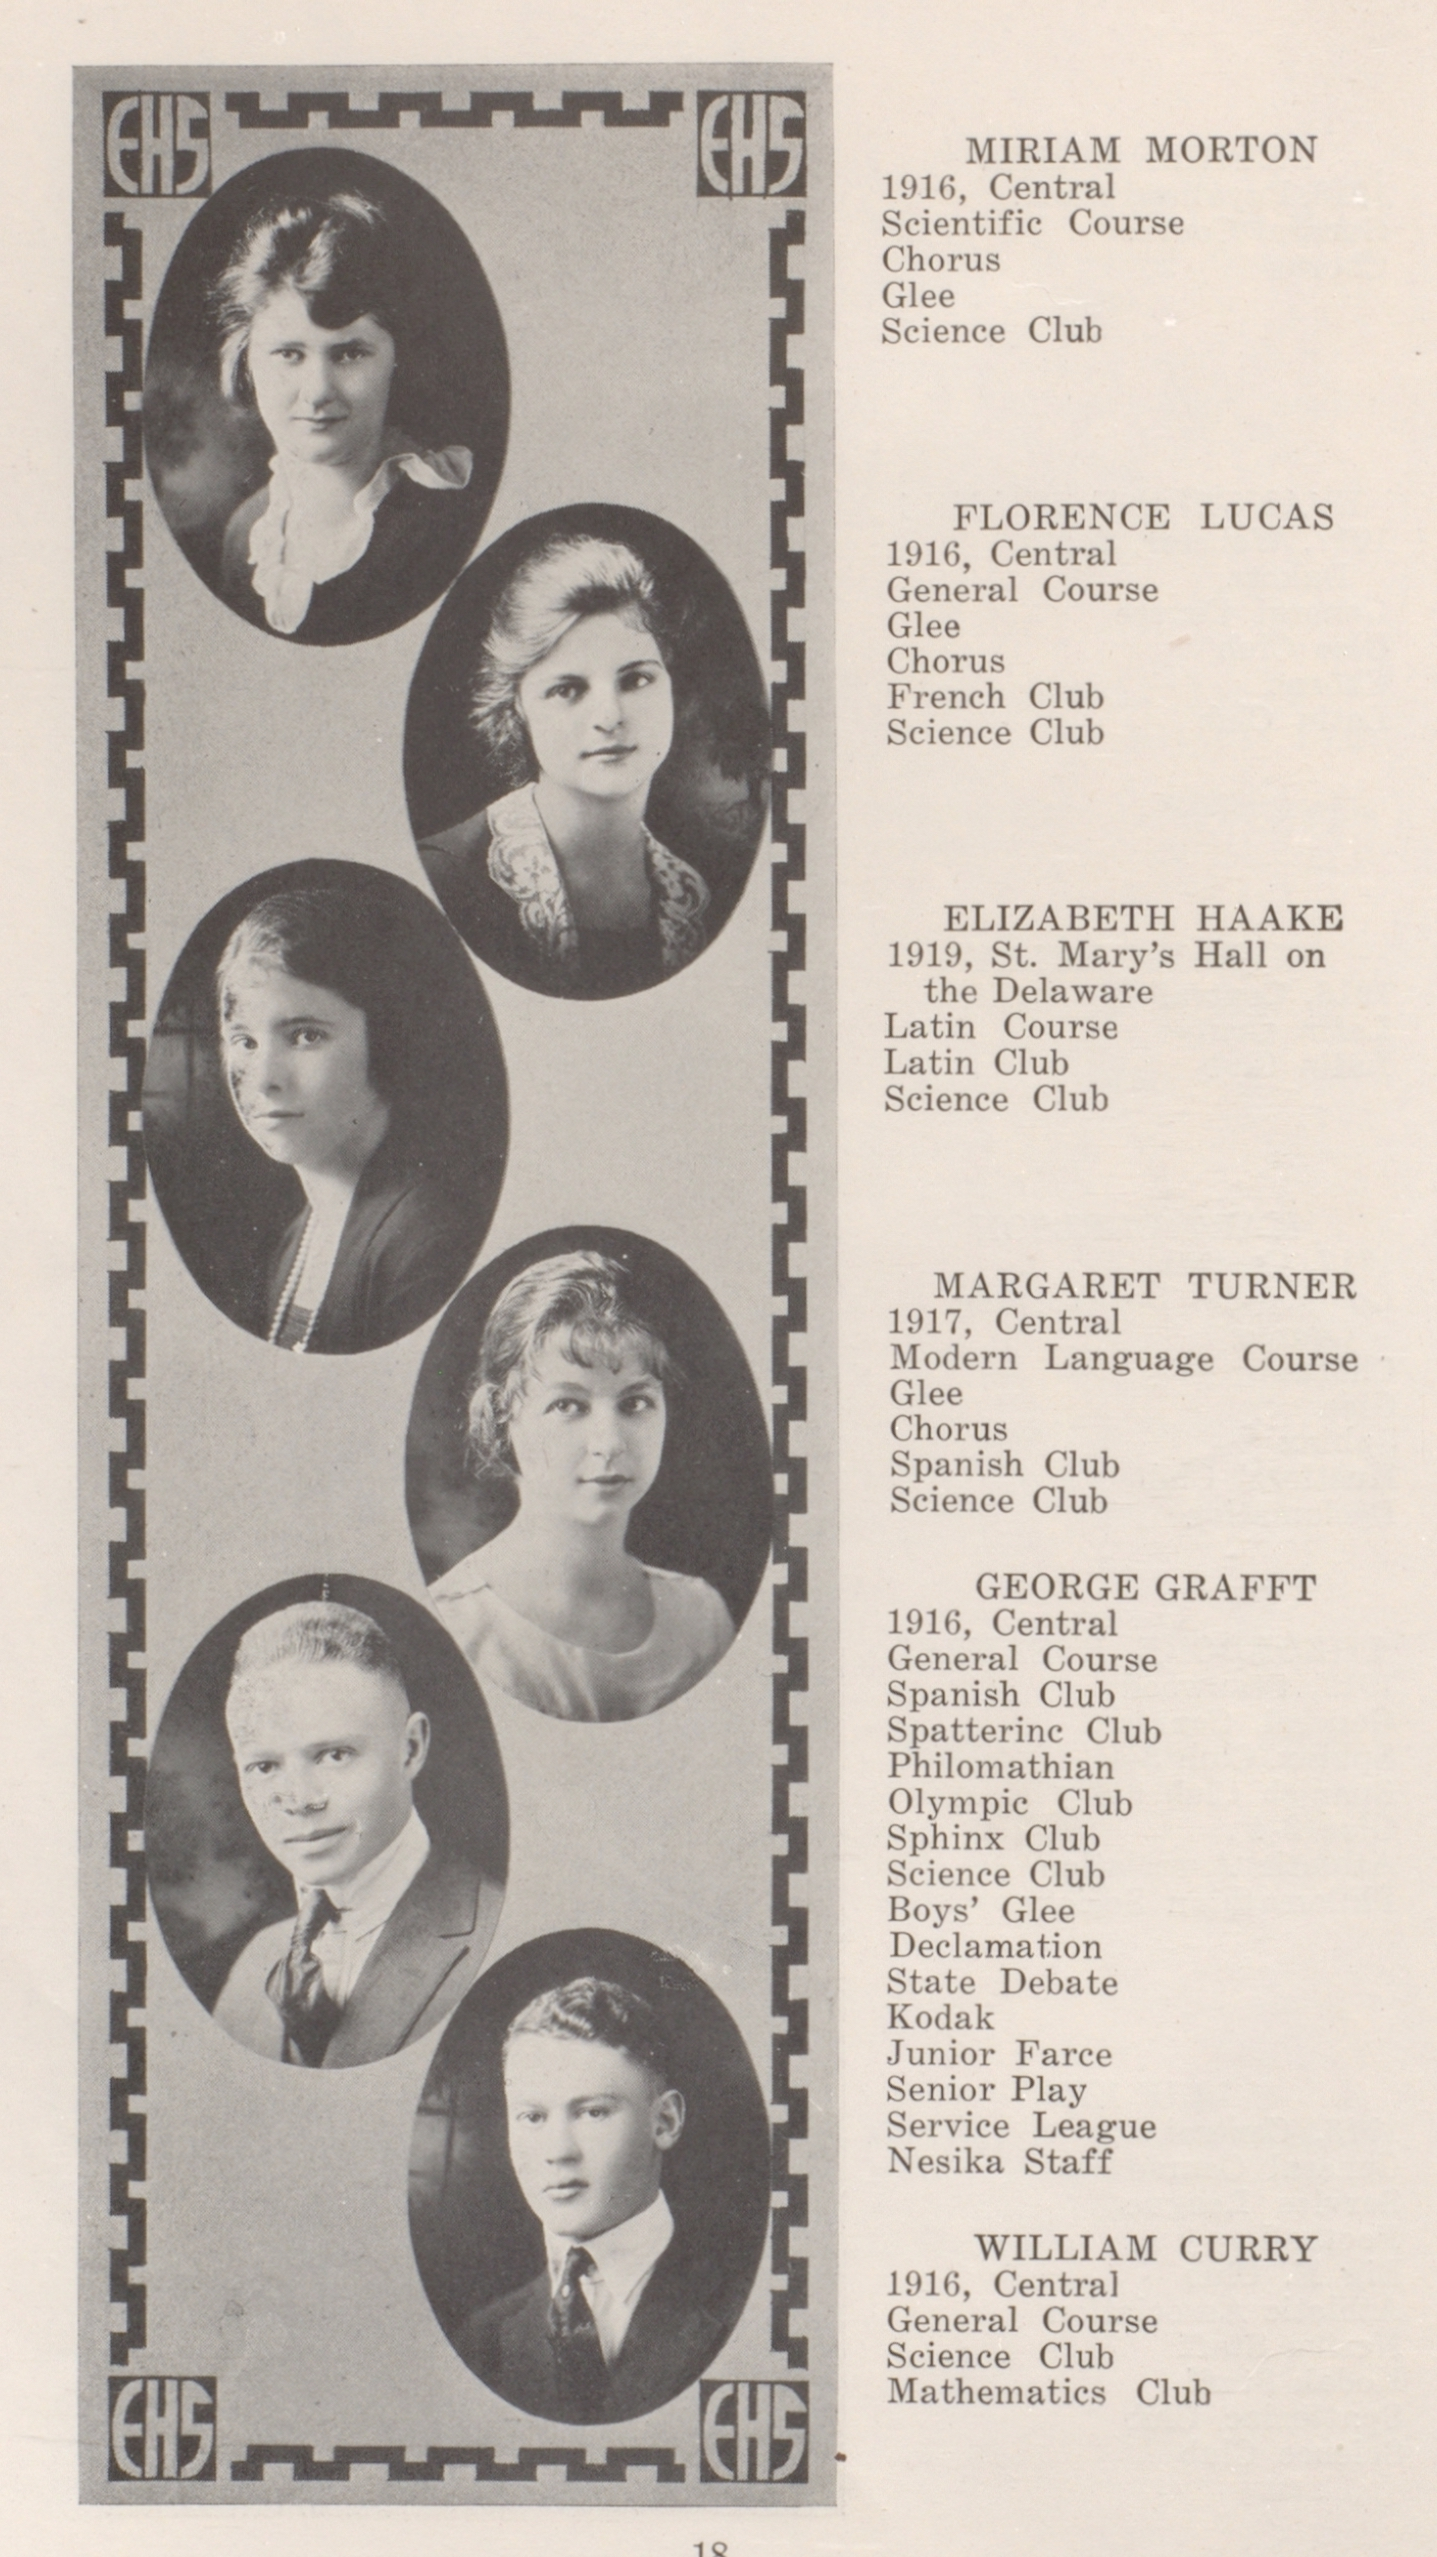 Yearbook page showing student portraits and information about their activities